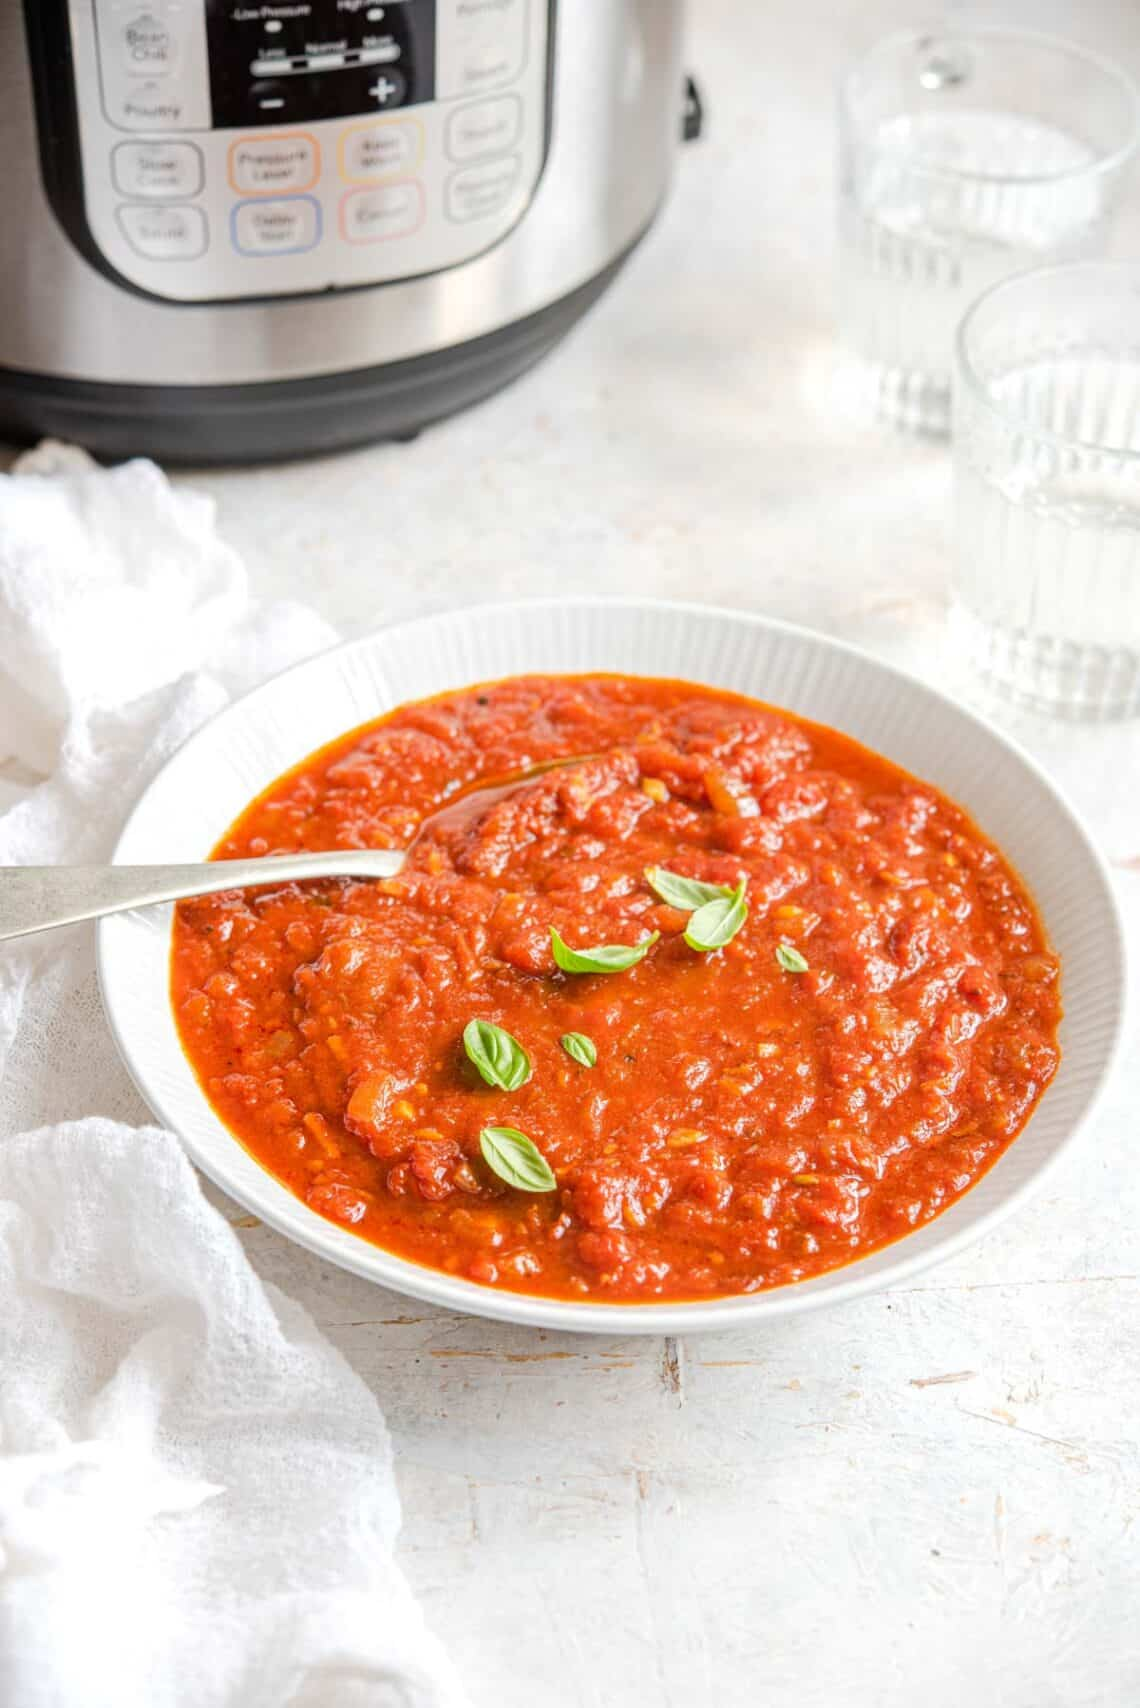 An side shot of spaghetti sauce in a bowl